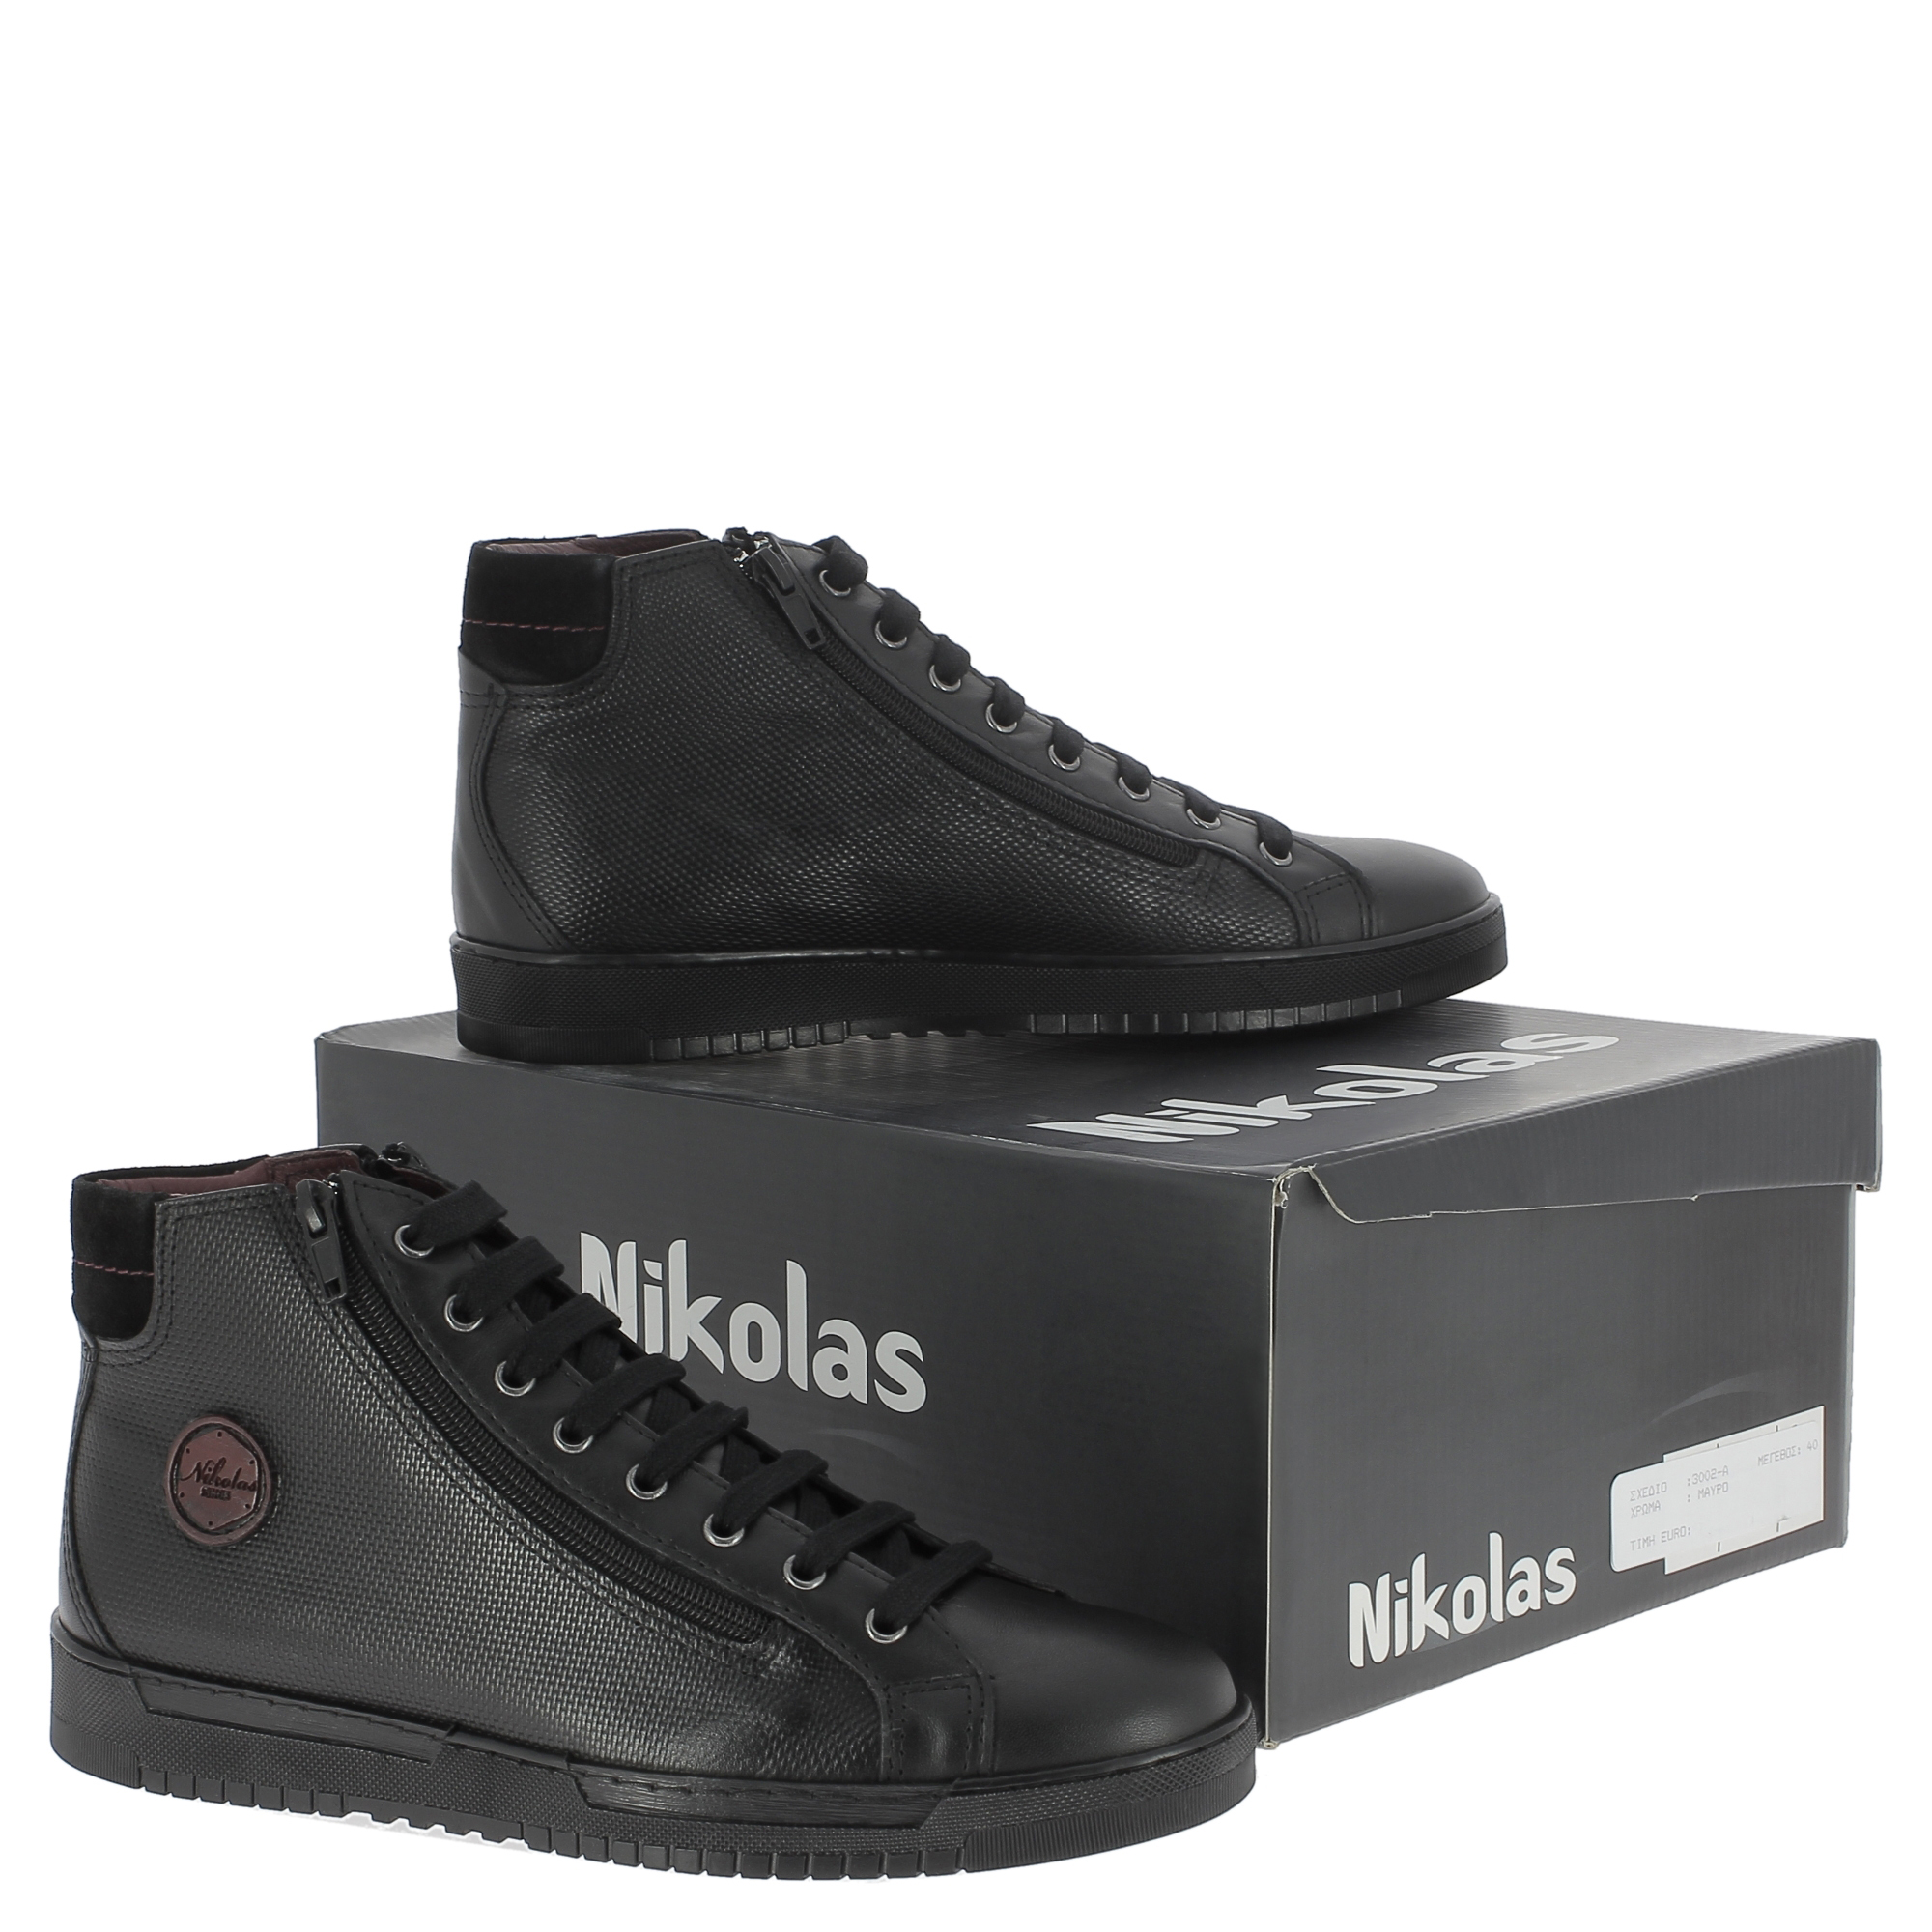 Nikolas-men-039-s-hi-top-trainers-in-black-Calf-leather-with-suede-ankle-detail thumbnail 12